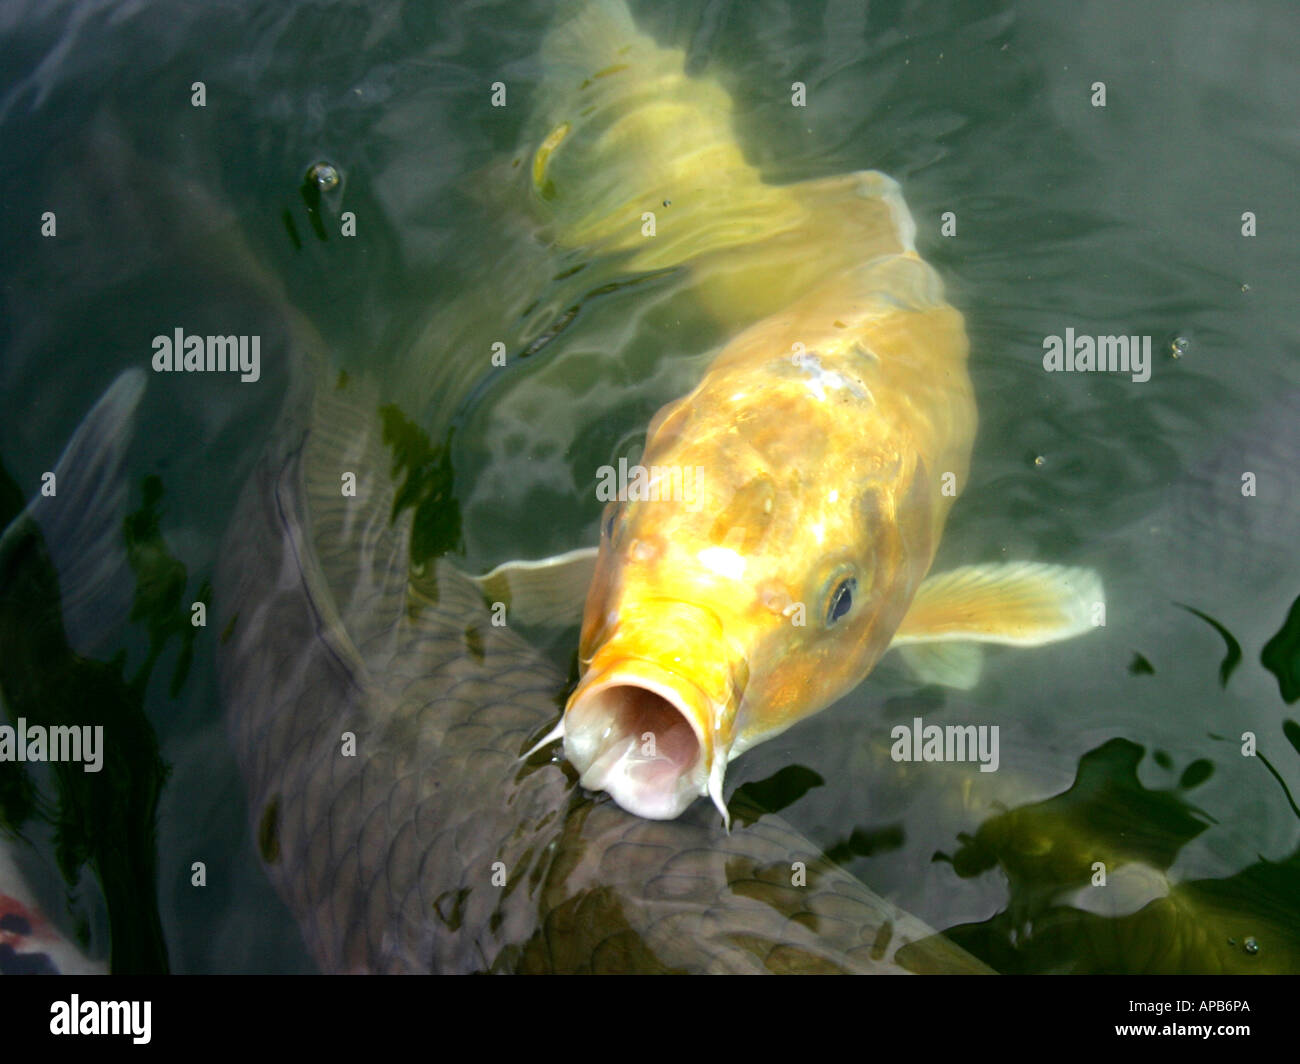 a golden koi carp with its mouth open stock photo royalty